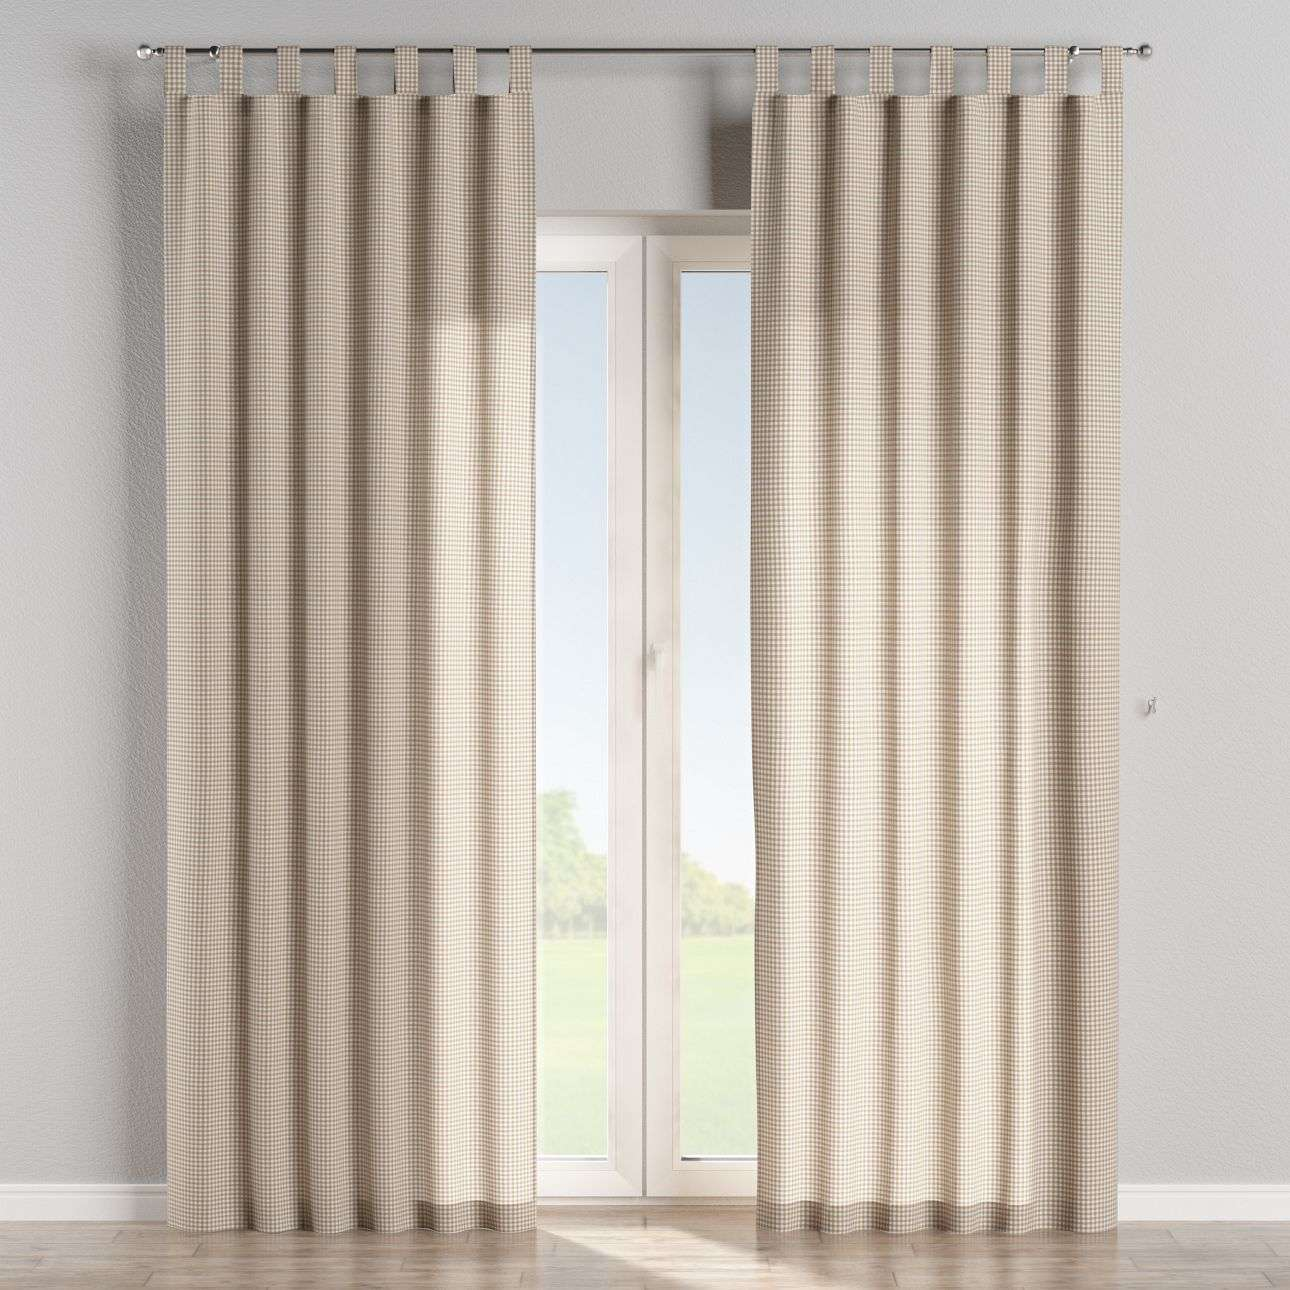 Tab top curtains in collection Quadro, fabric: 136-05